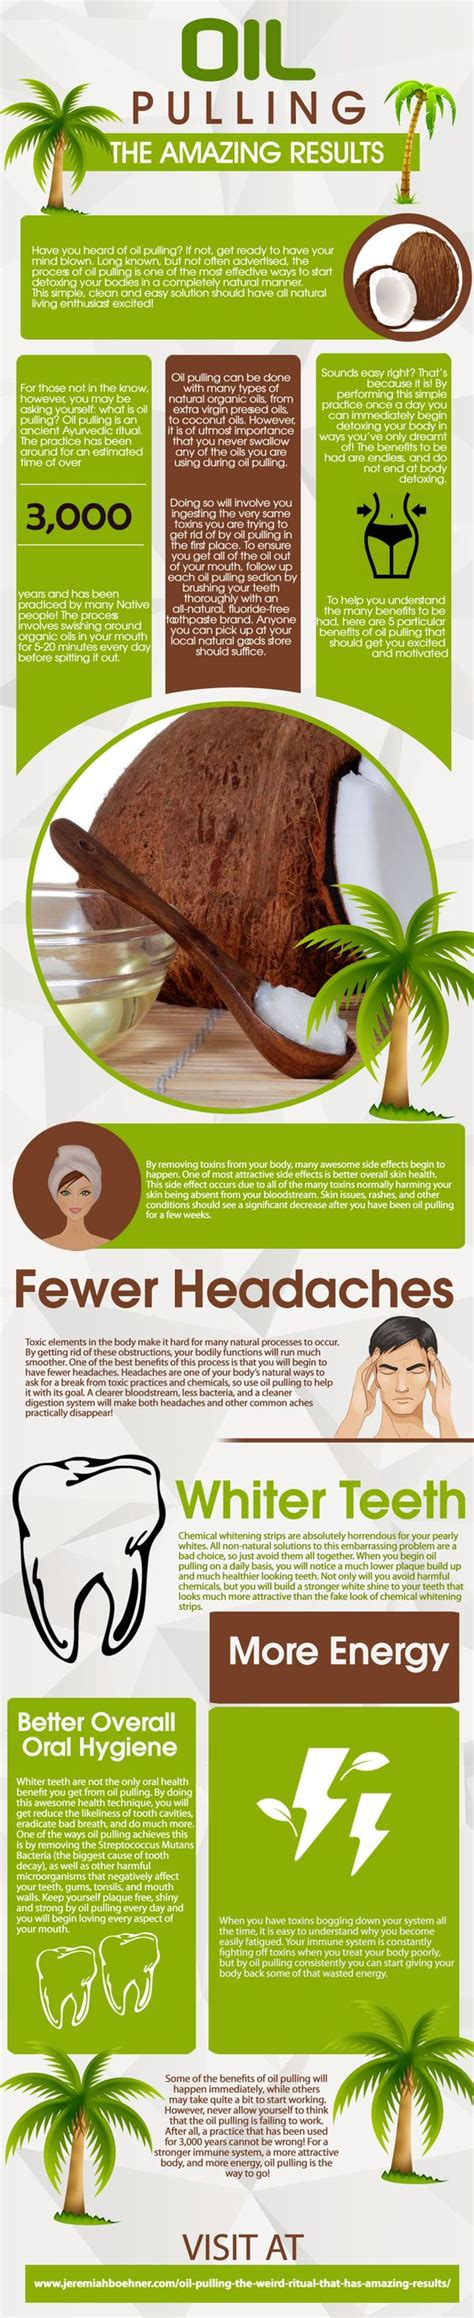 Coconut Pulling Detox Effects by Pulling The Ritual That Has Amazing Results